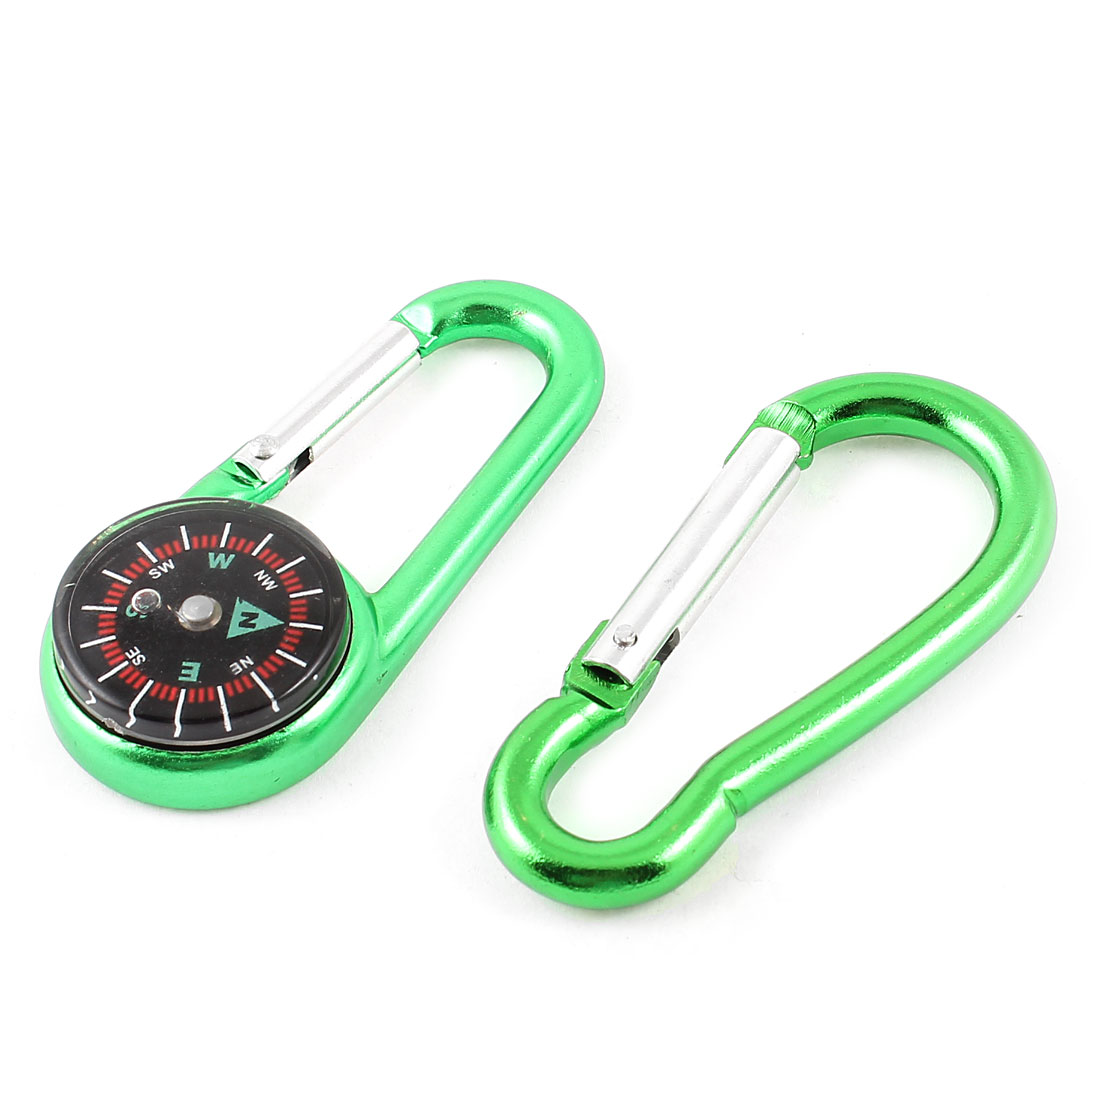 "Hiking Aluminum Alloy Snap Hook Compass Carabiner Green 2.7"" Long 2 in 1"